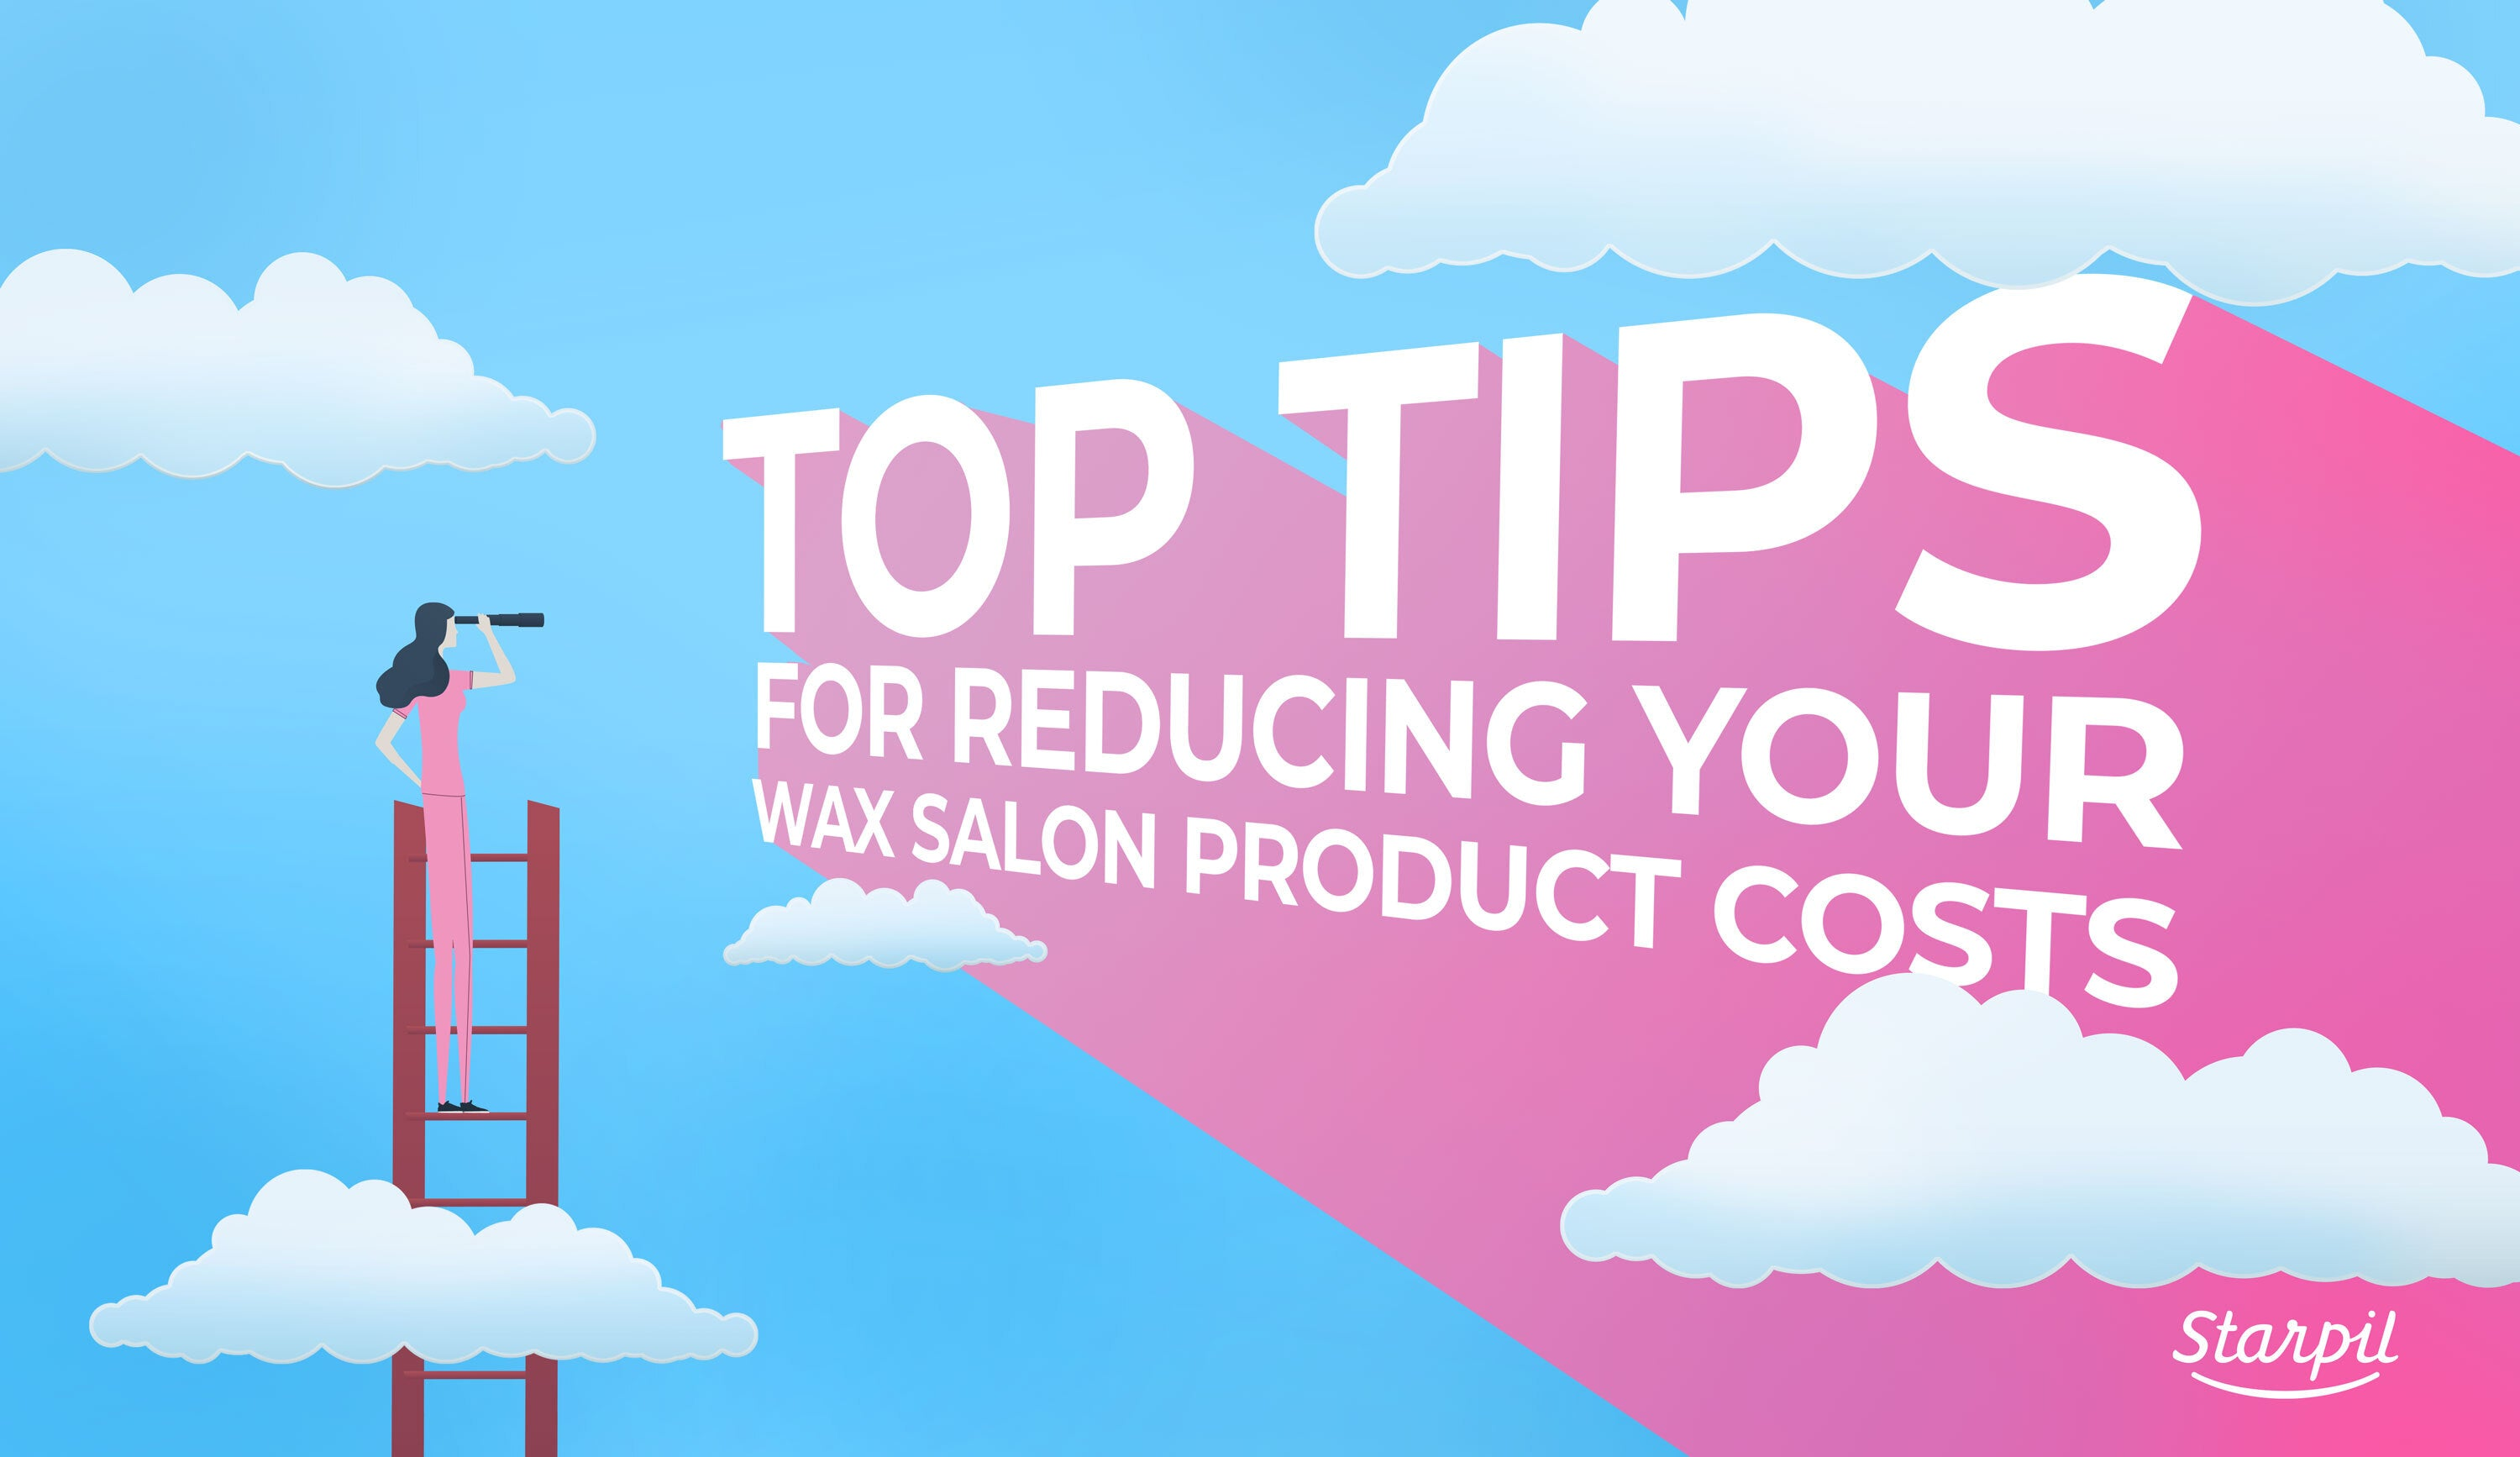 Top Tips for Reducing Your Wax Salon Product Costs